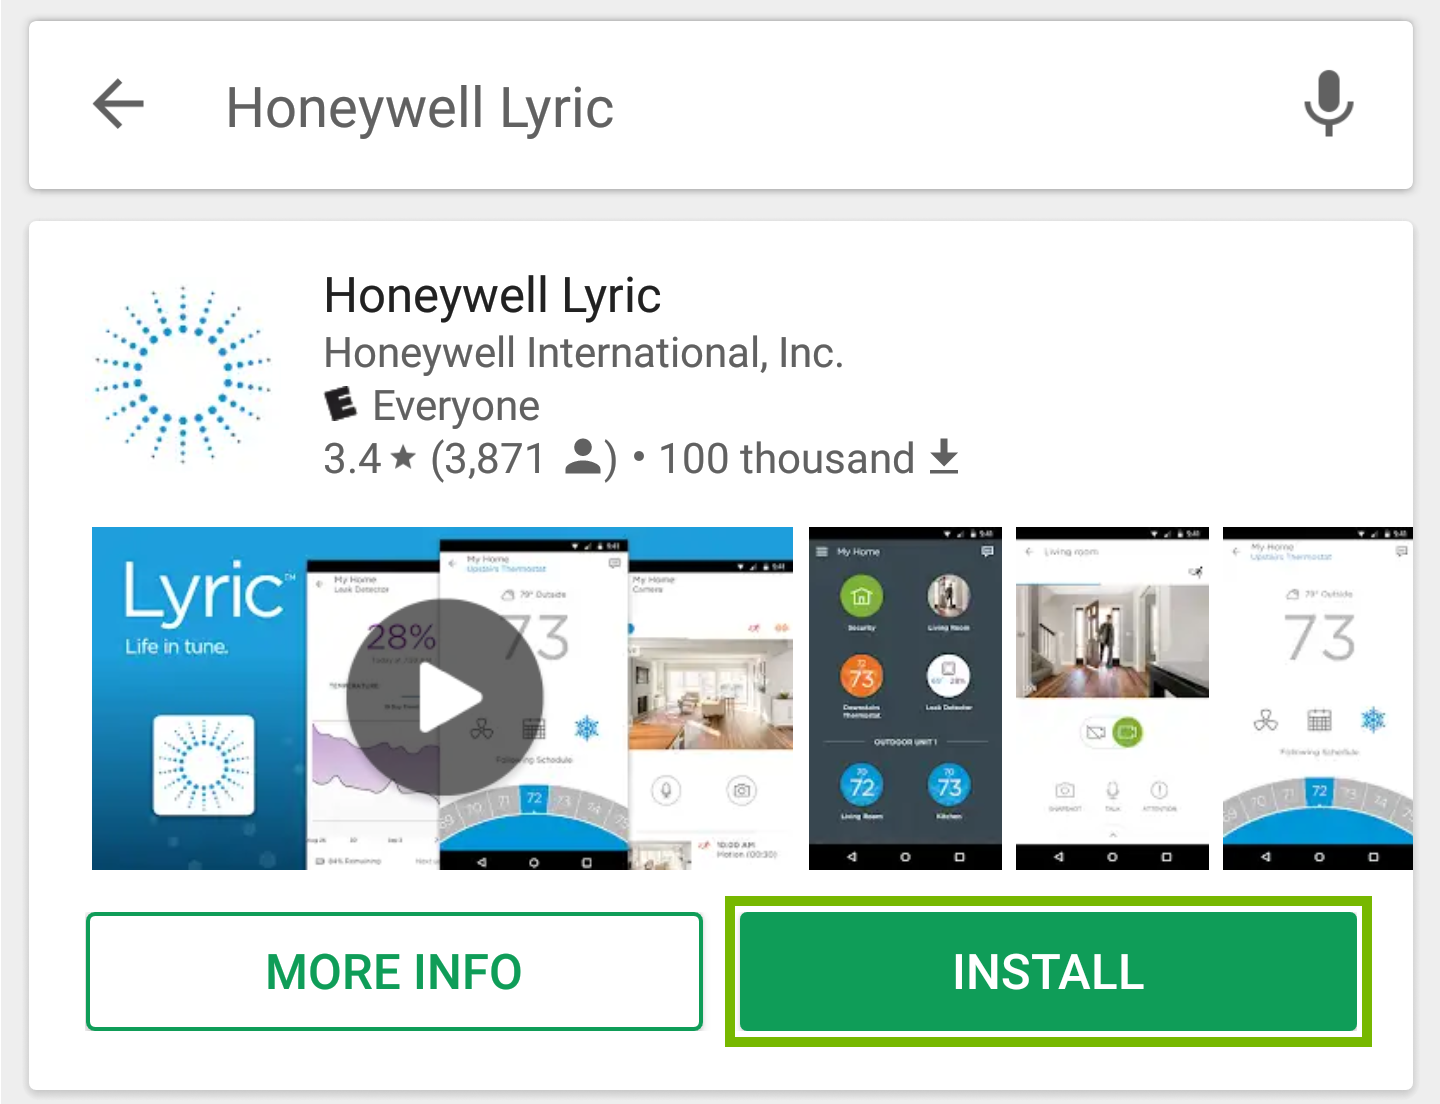 Picture indicating to press the install button for the Honeywell Lyric app